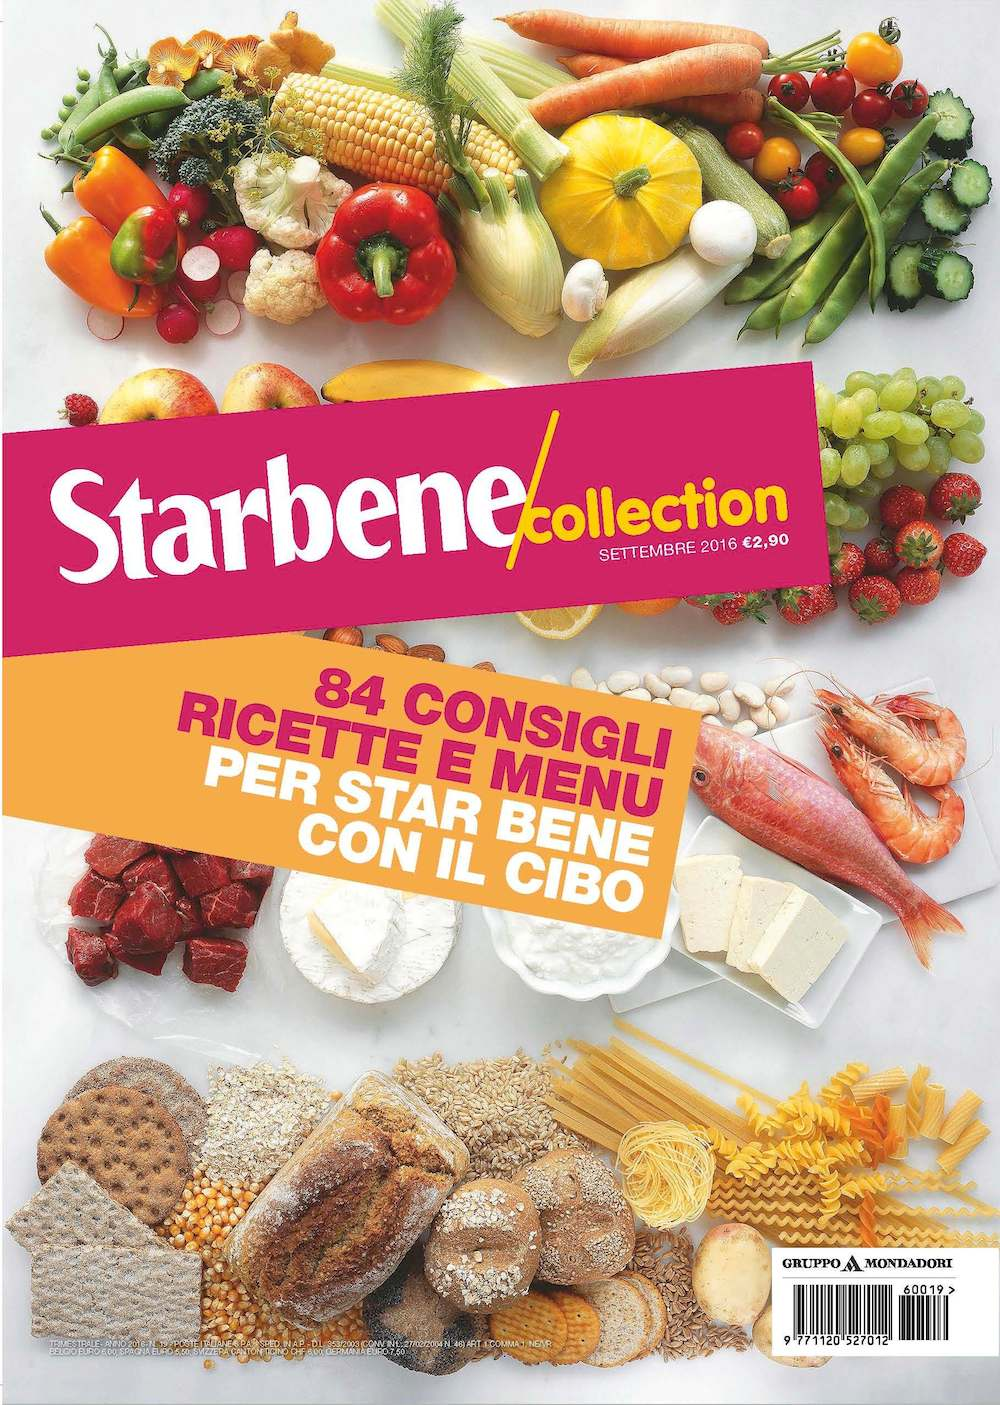 starbene-collection-cover